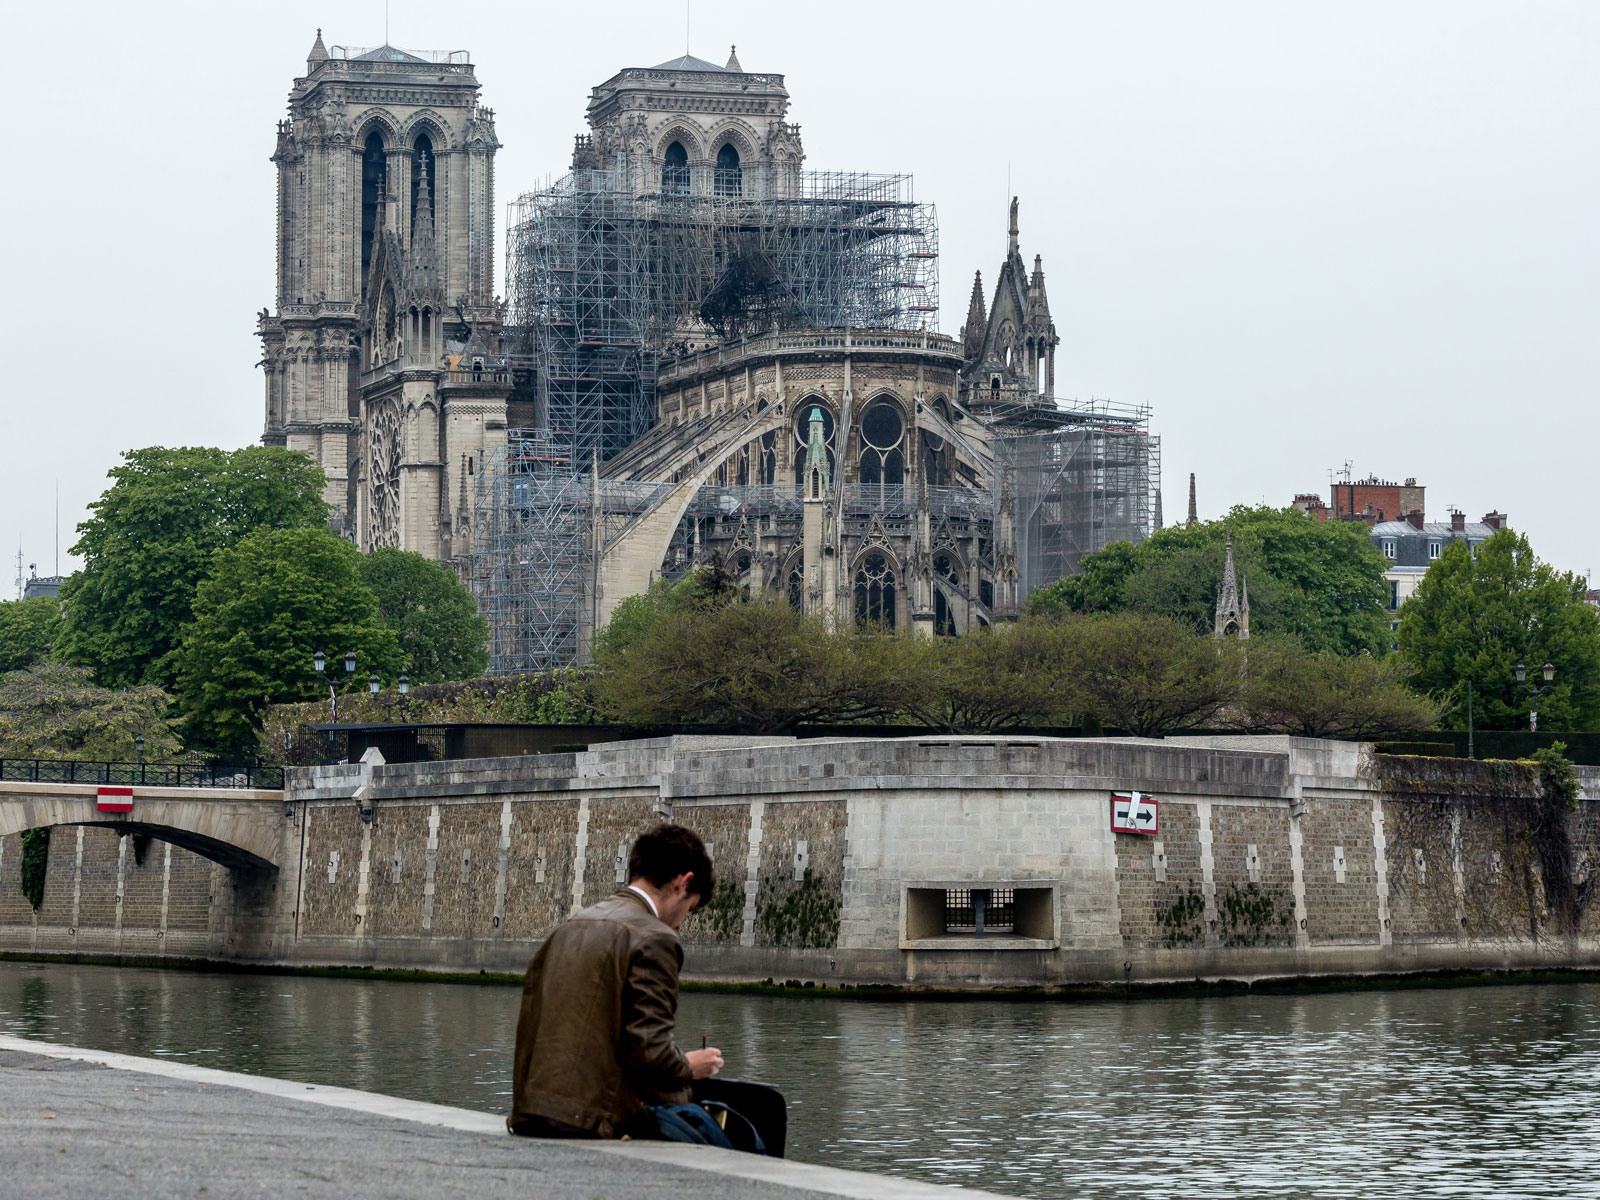 France's Wine Industry Pledges to Help Repair Notre-Dame